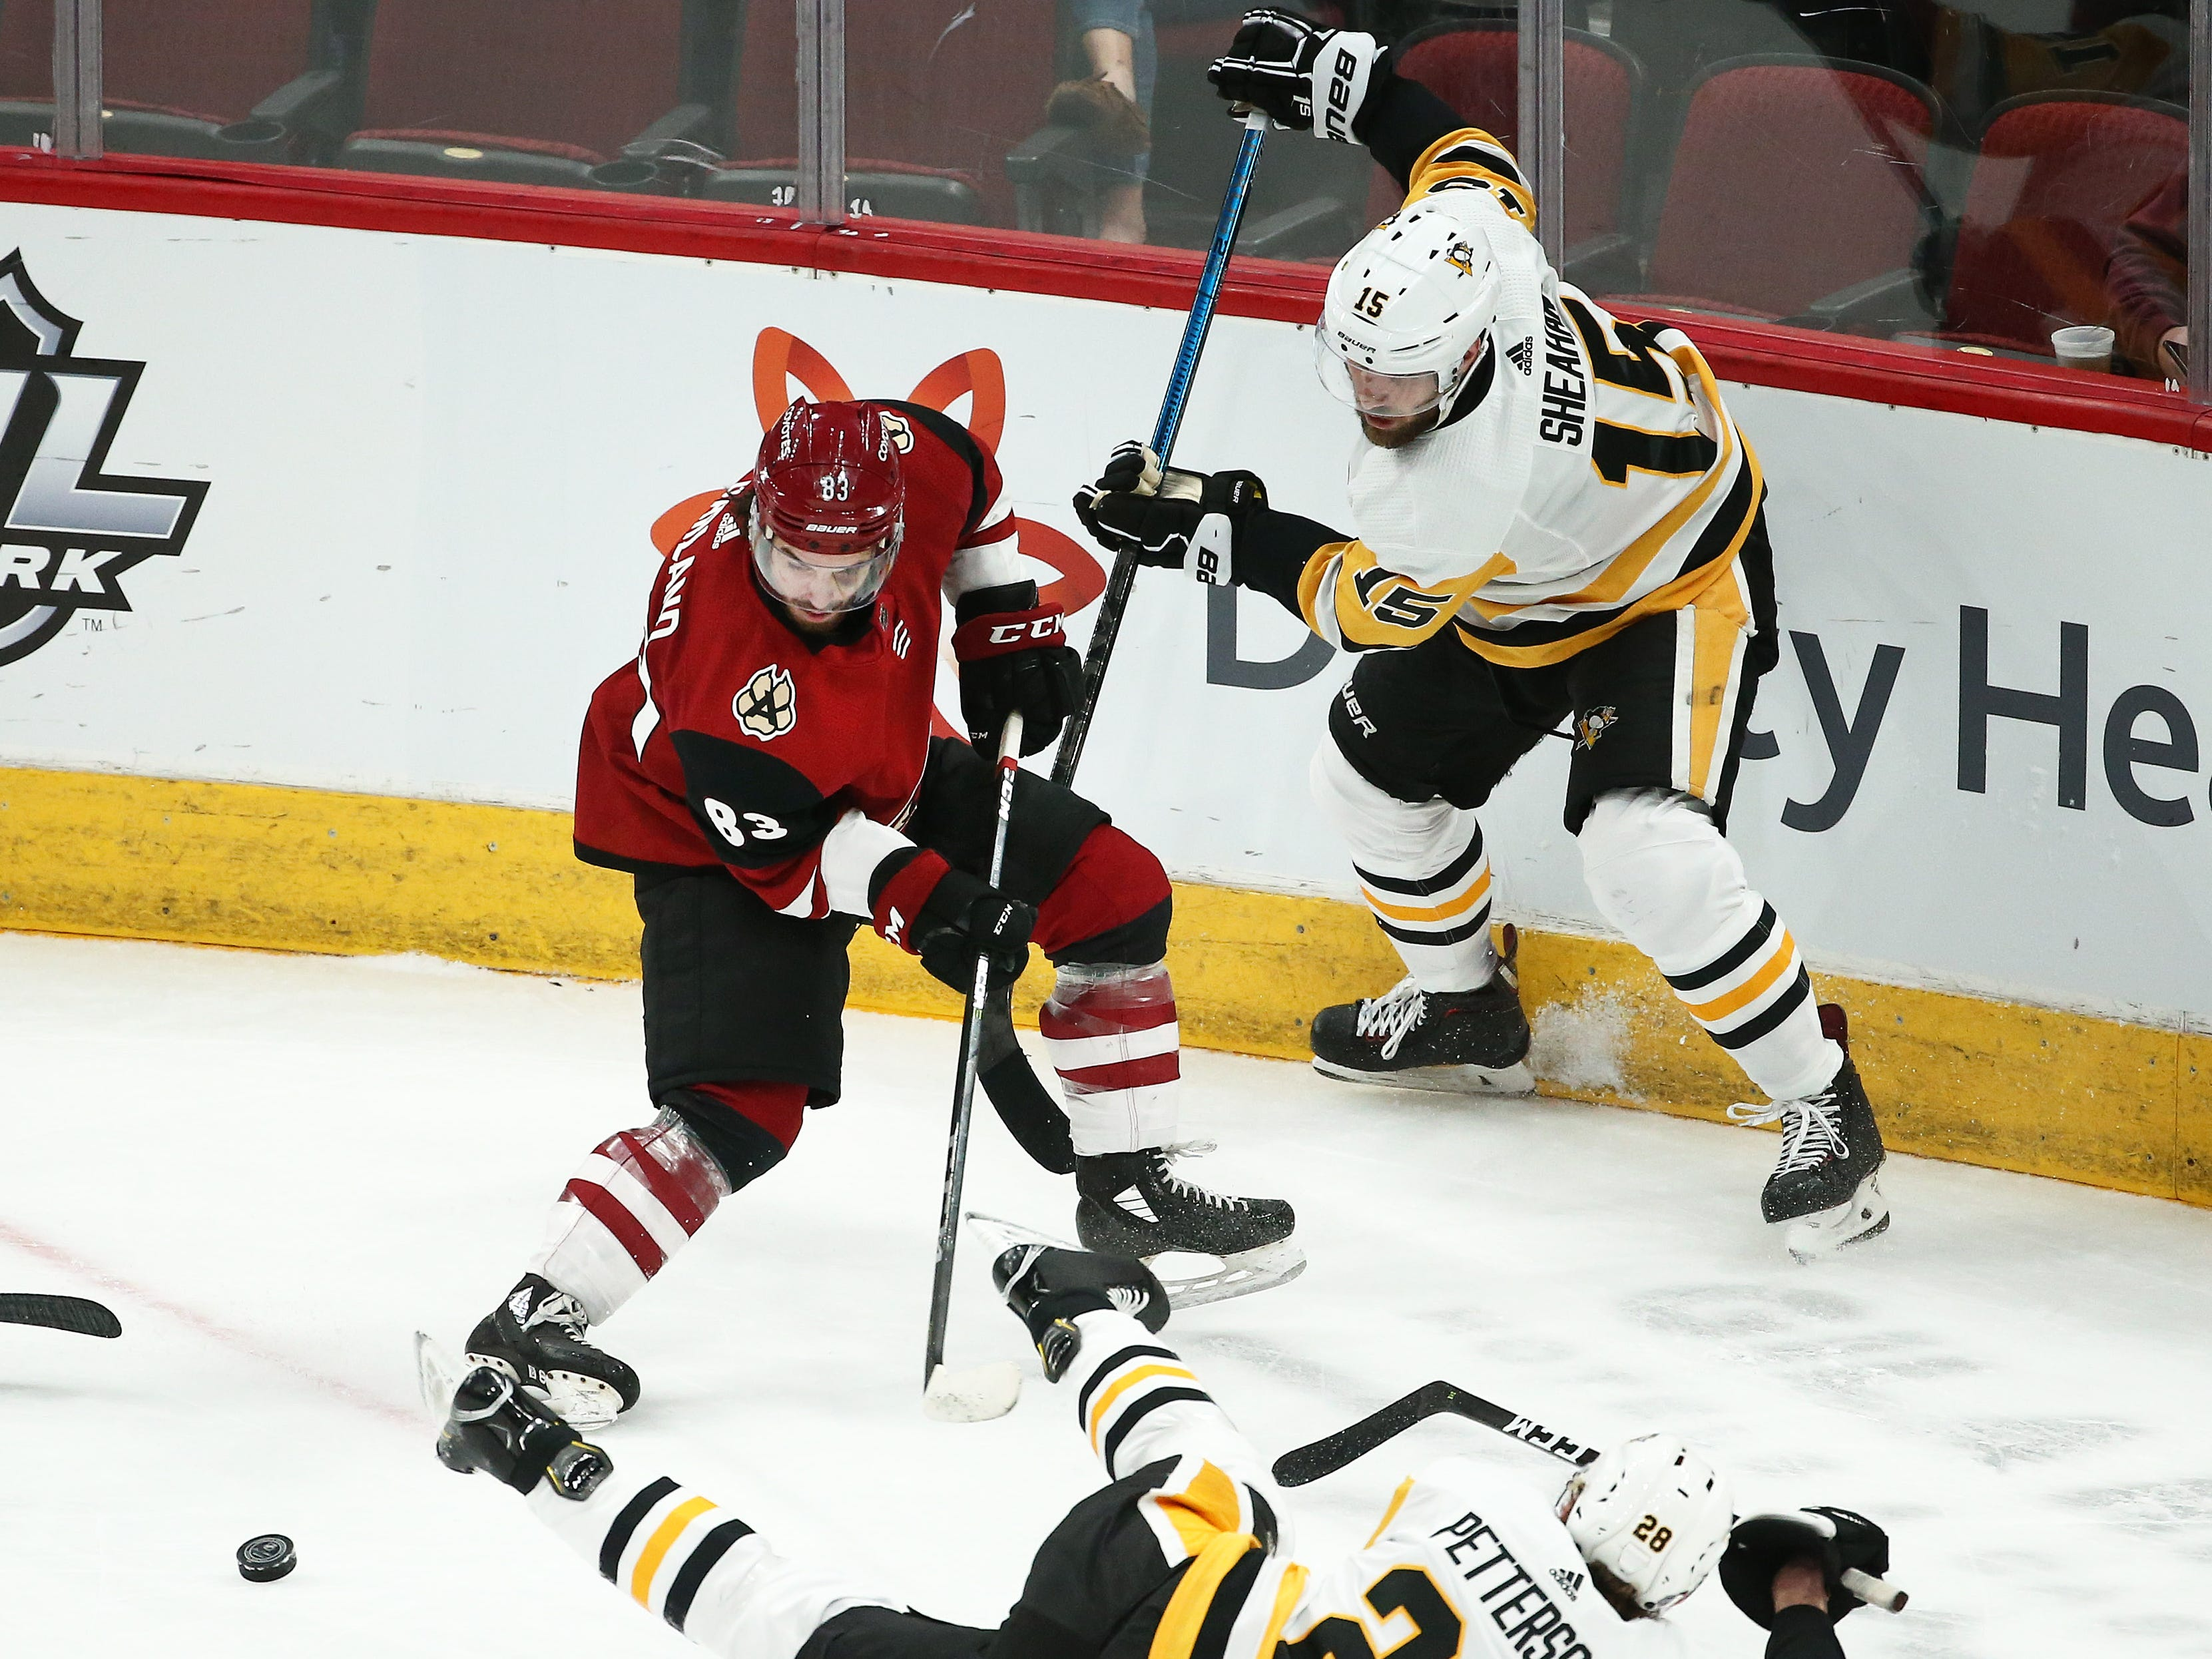 Arizona Coyotes' Conor Garland battles for the puck with Pittsburgh Penguins Marcus Pettersson (28) and Riley Sheahan (15) in the first period on Jan. 18 at Gila River Arena.